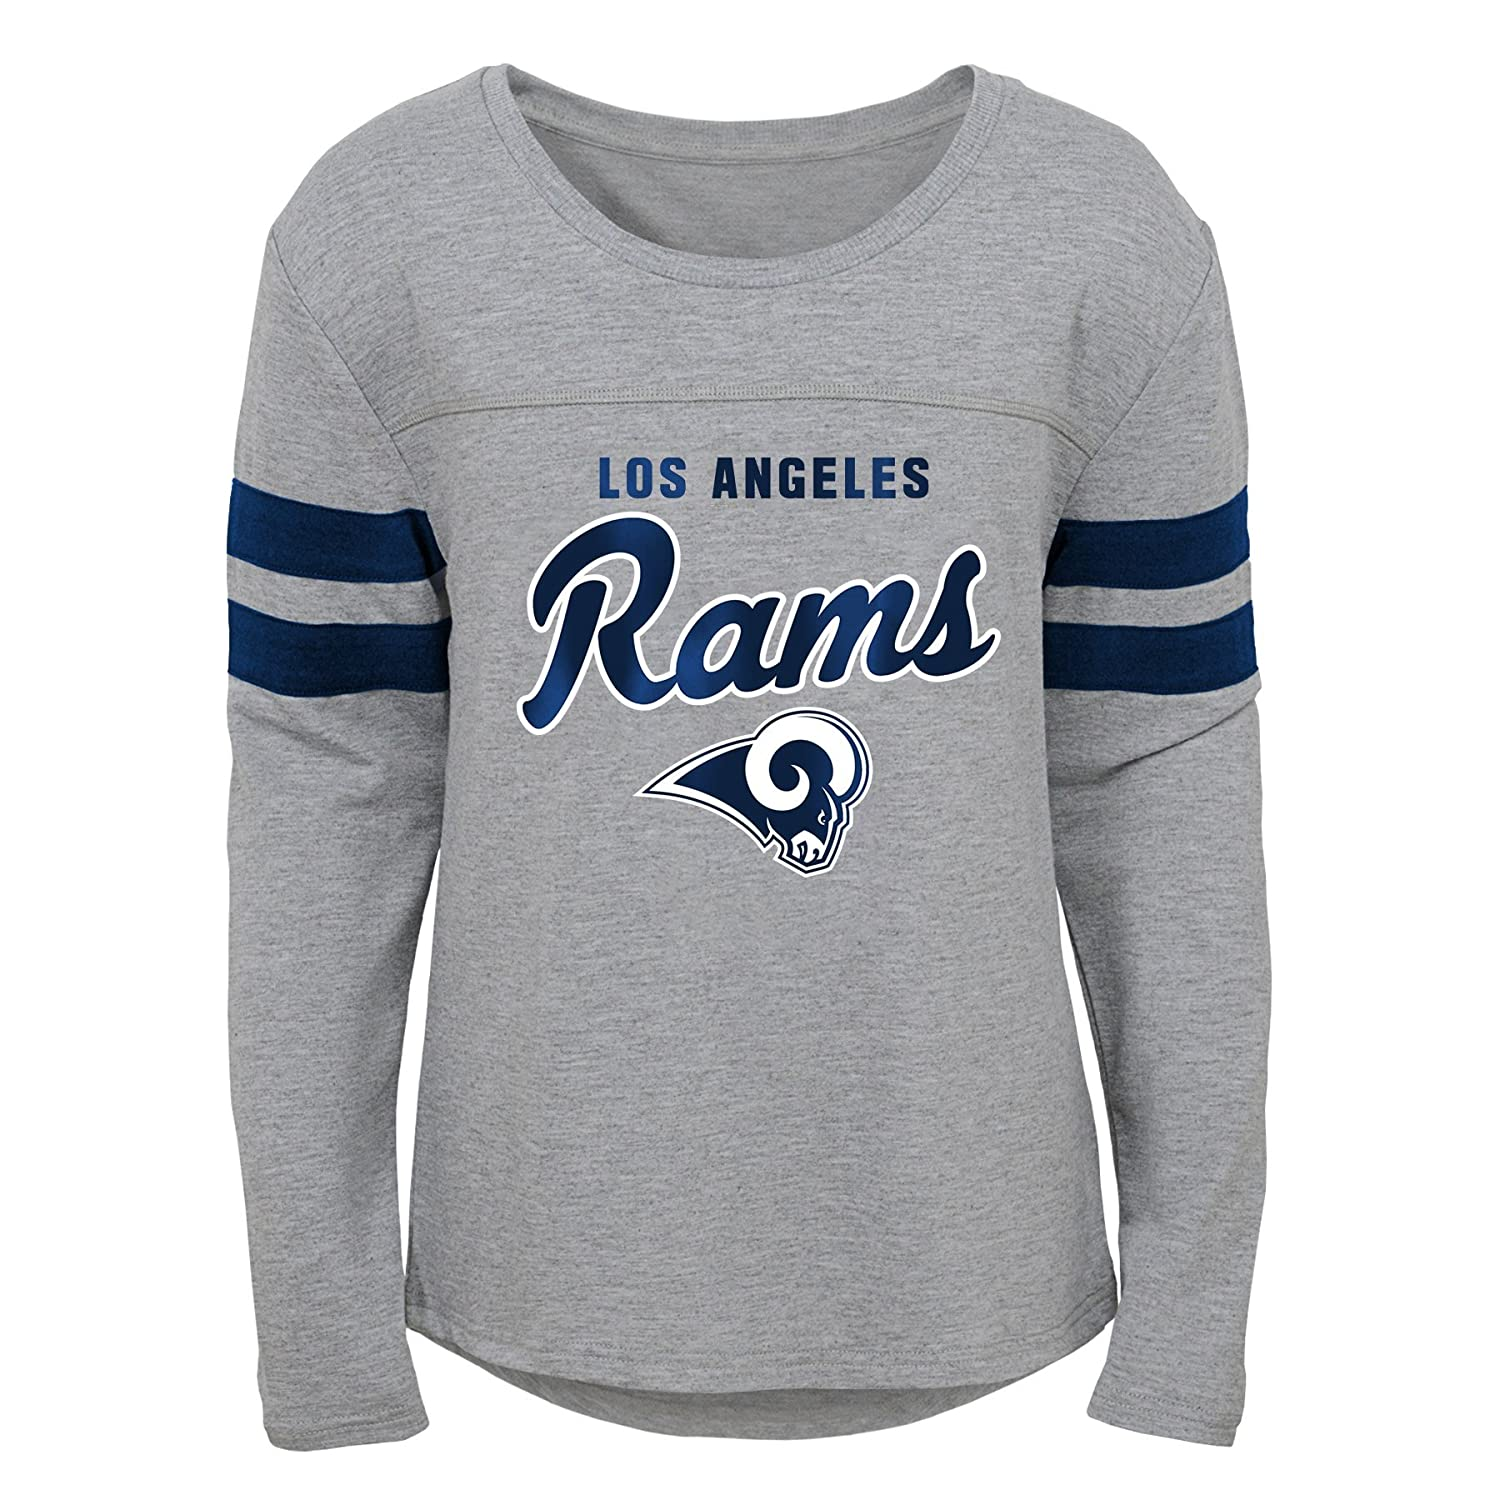 Outerstuff NFL NFL Los Angeles Rams Youth Girls Field Armor Long Sleeve Dolman Tee Heather Grey Youth X-Large 16